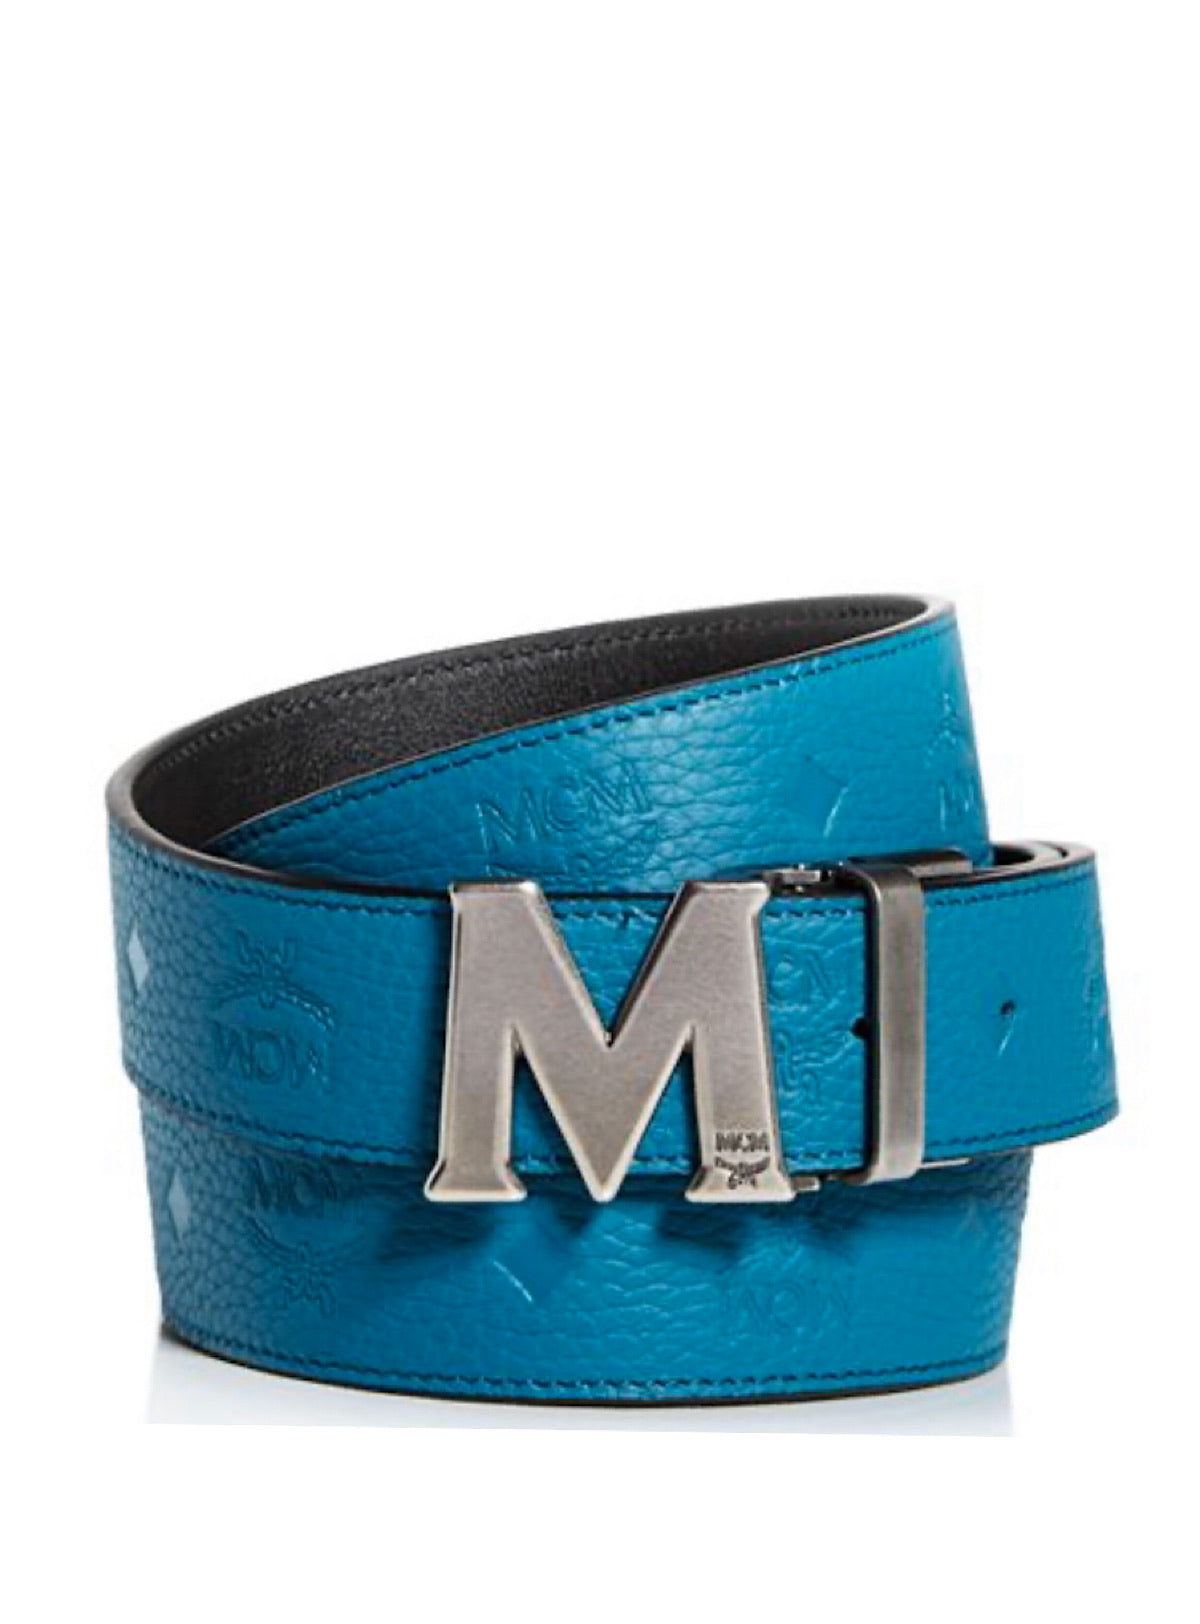 MCM Belt - Thin Reversible - Teal With Matt Silver Buckle